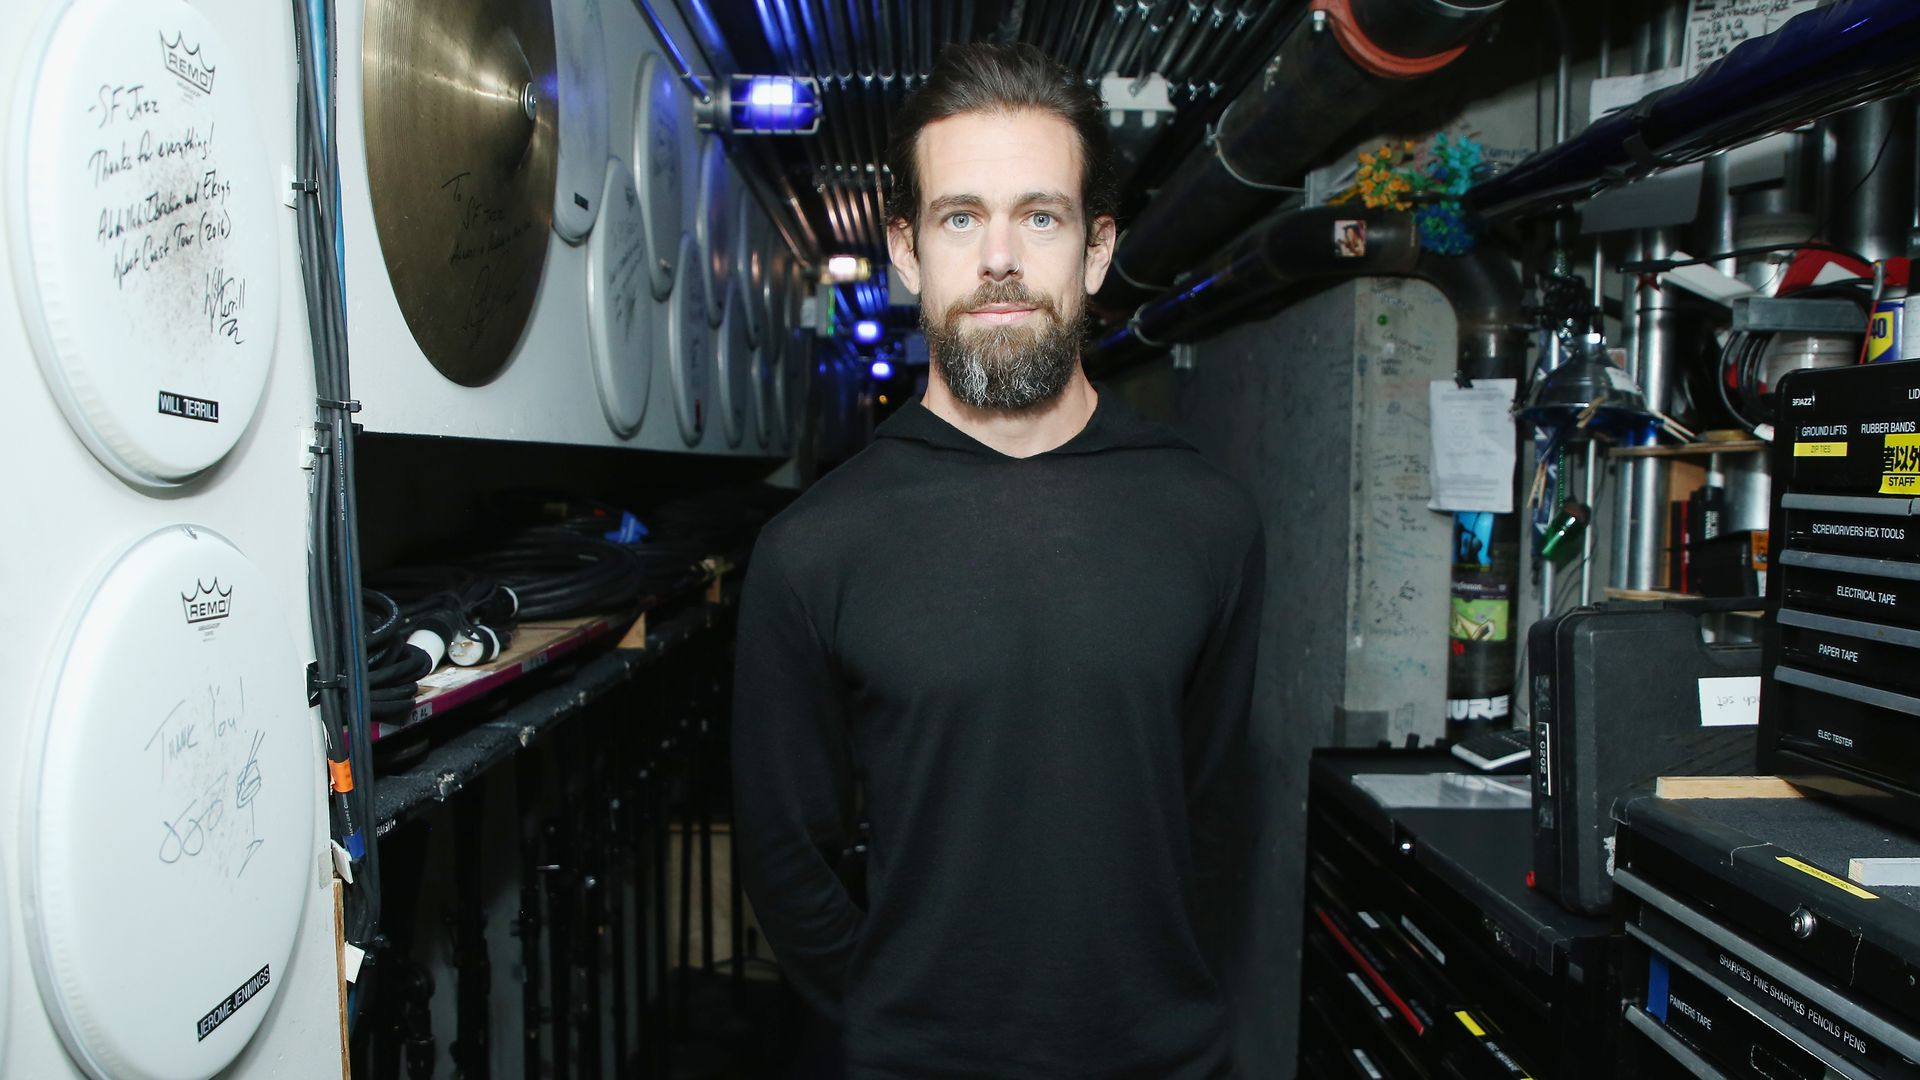 Twitter CEO Jack Dorsey meets with Trump in Oval Office